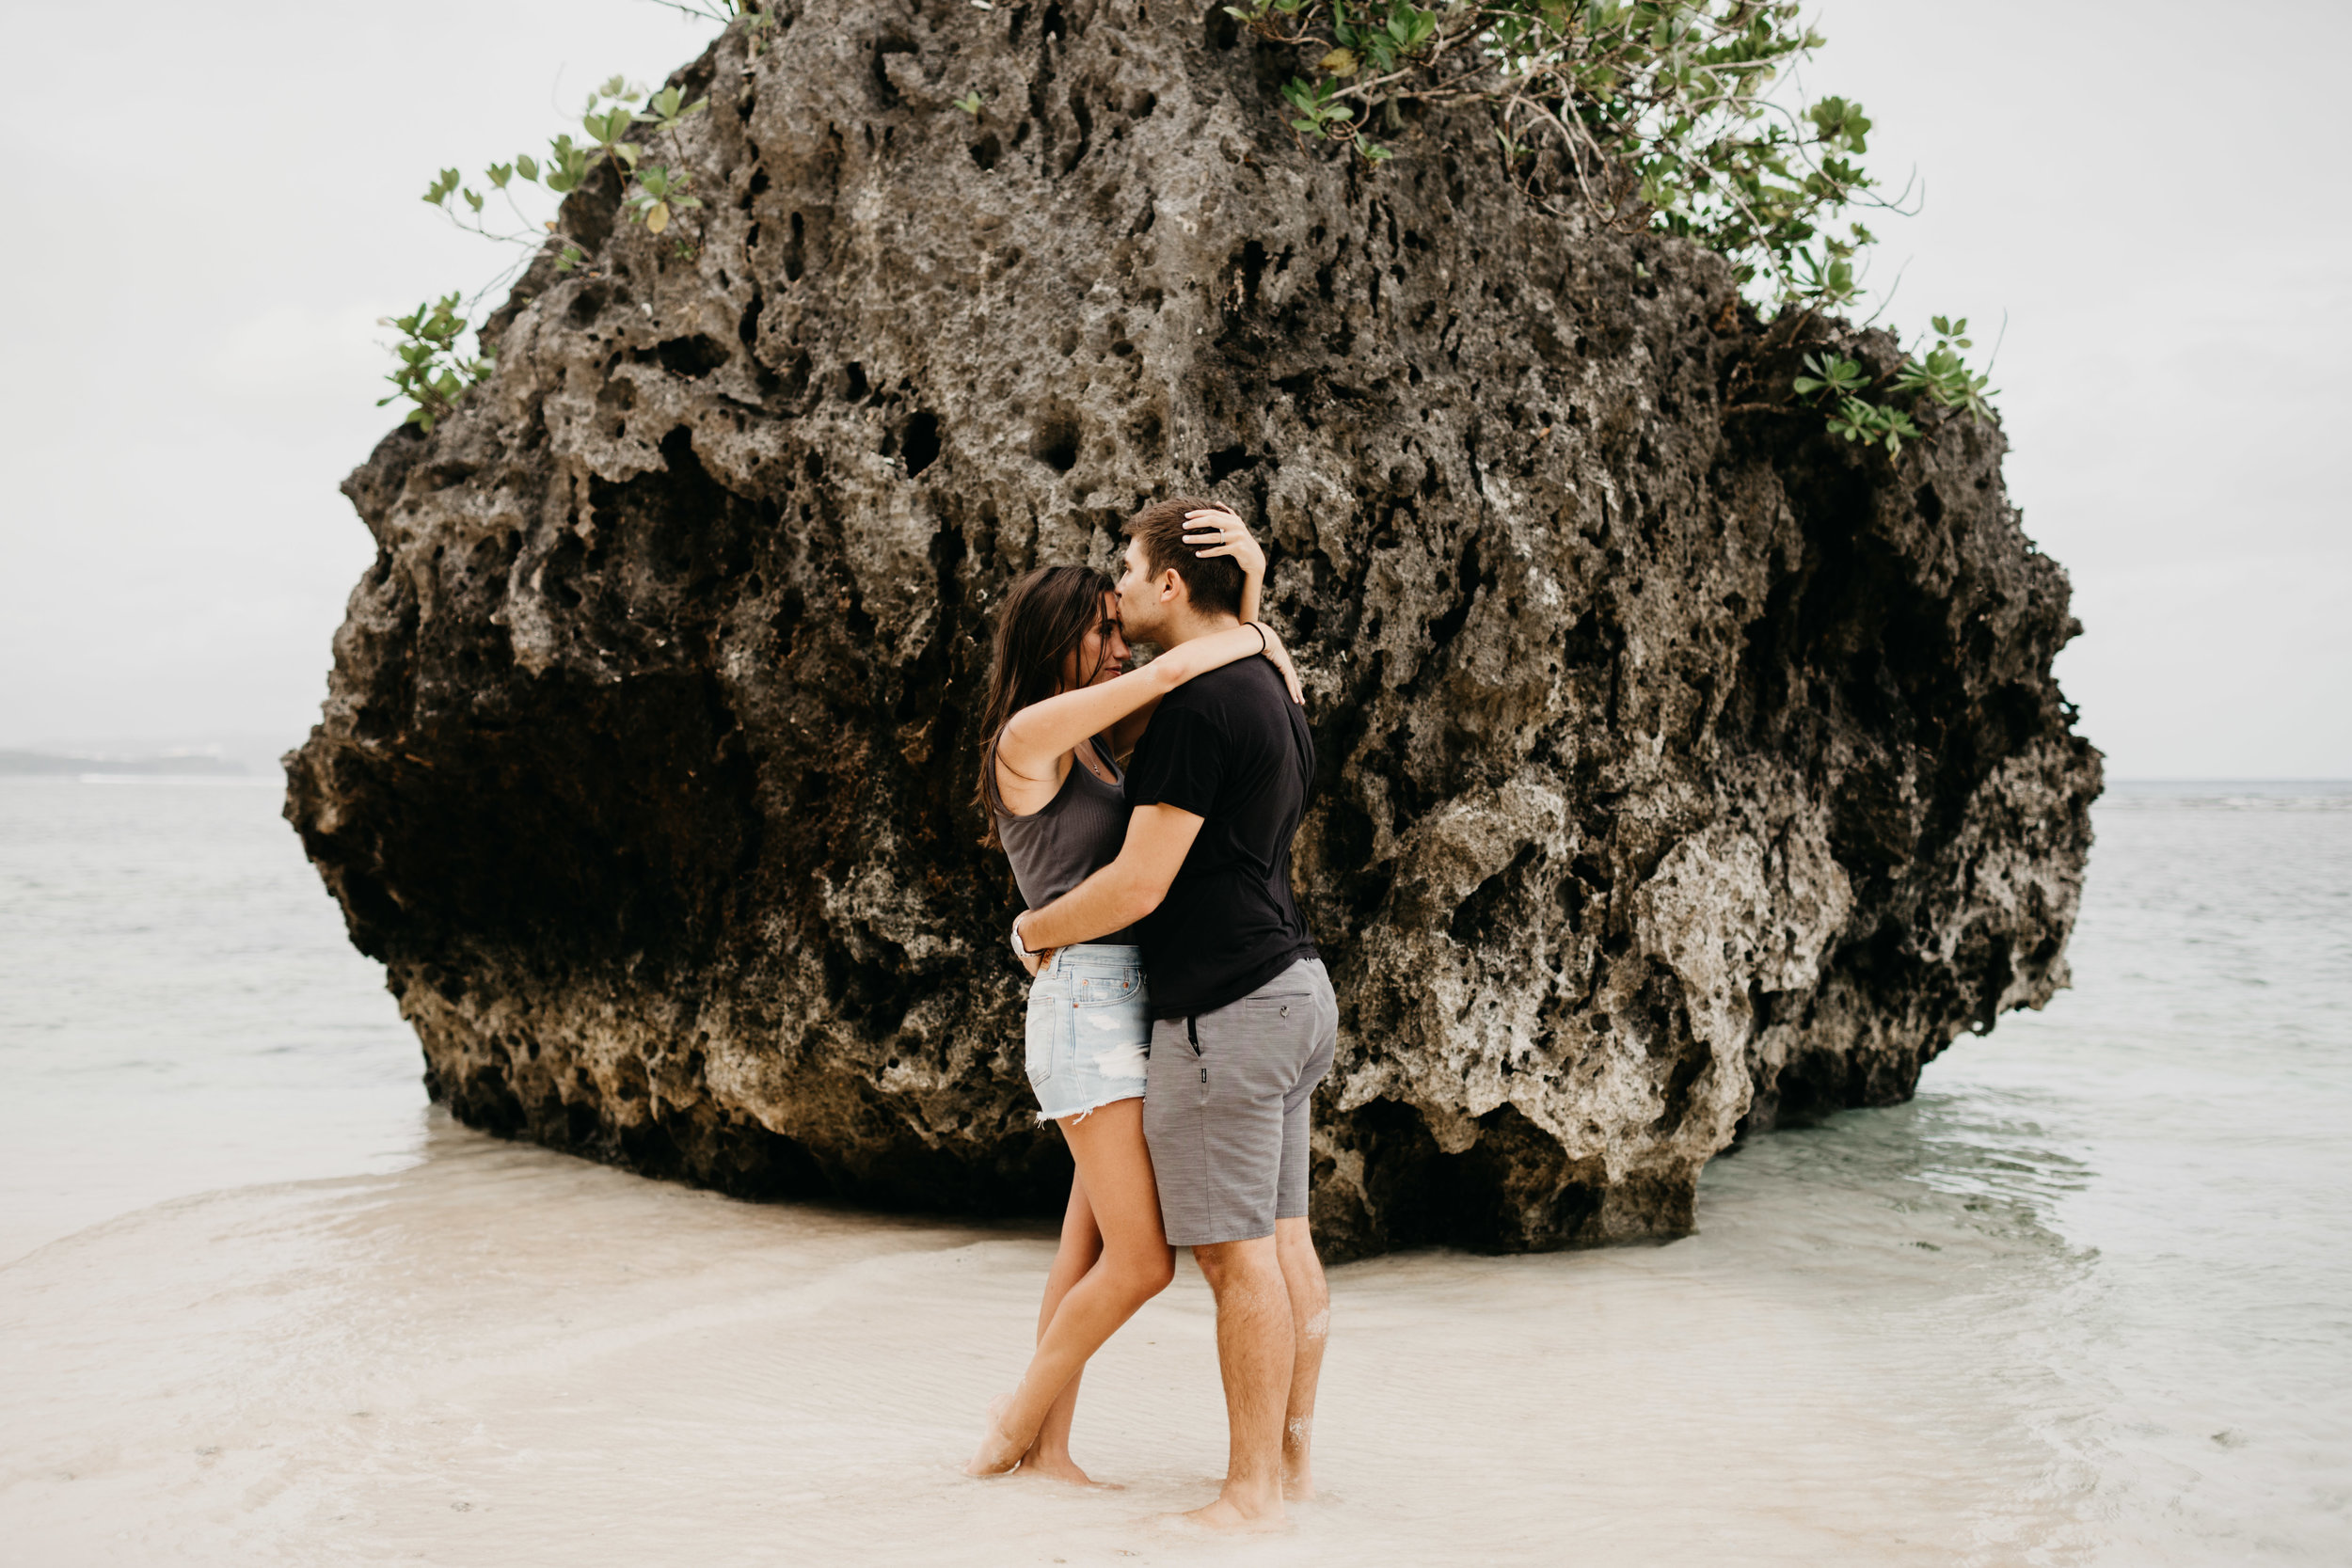 guam-beachy-adventurous-couples-photo-by-samantha-look.jpg